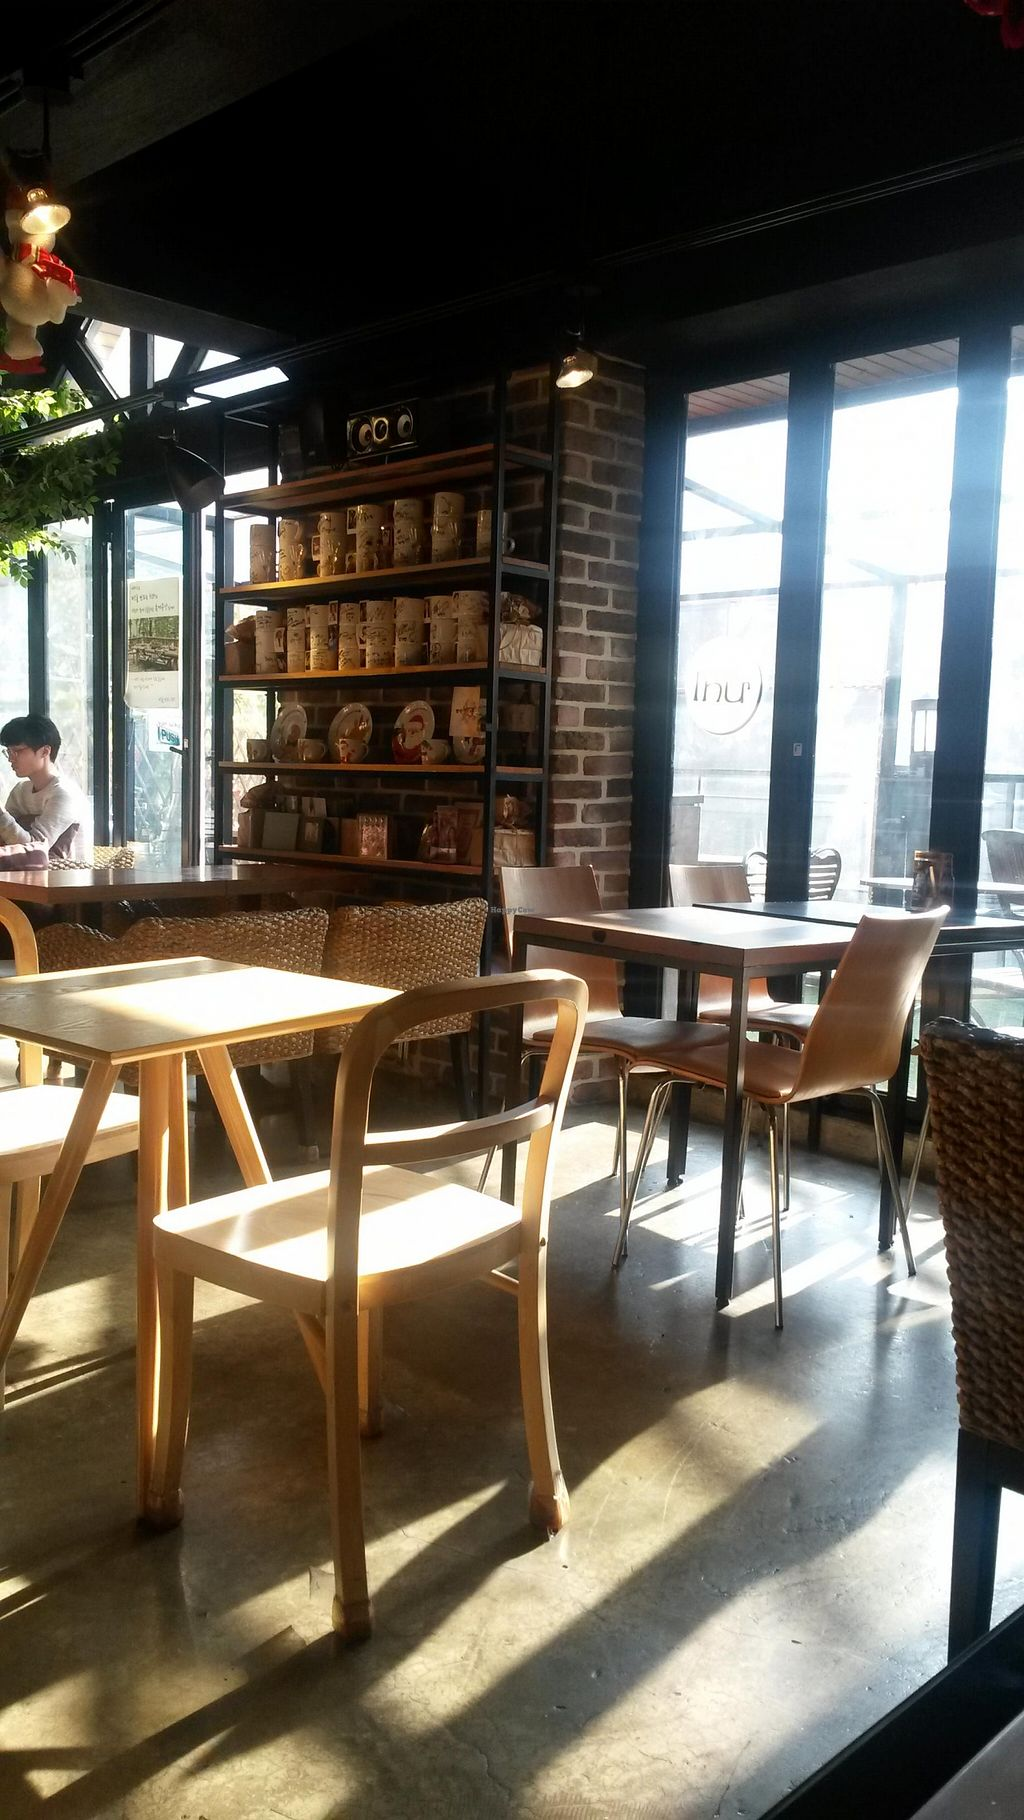 """Photo of CLOSED: Cafe Inu Eco Natural - 카페 이누  by <a href=""""/members/profile/mireia90"""">mireia90</a> <br/>Cafe Inu <br/> December 23, 2015  - <a href='/contact/abuse/image/66799/129560'>Report</a>"""